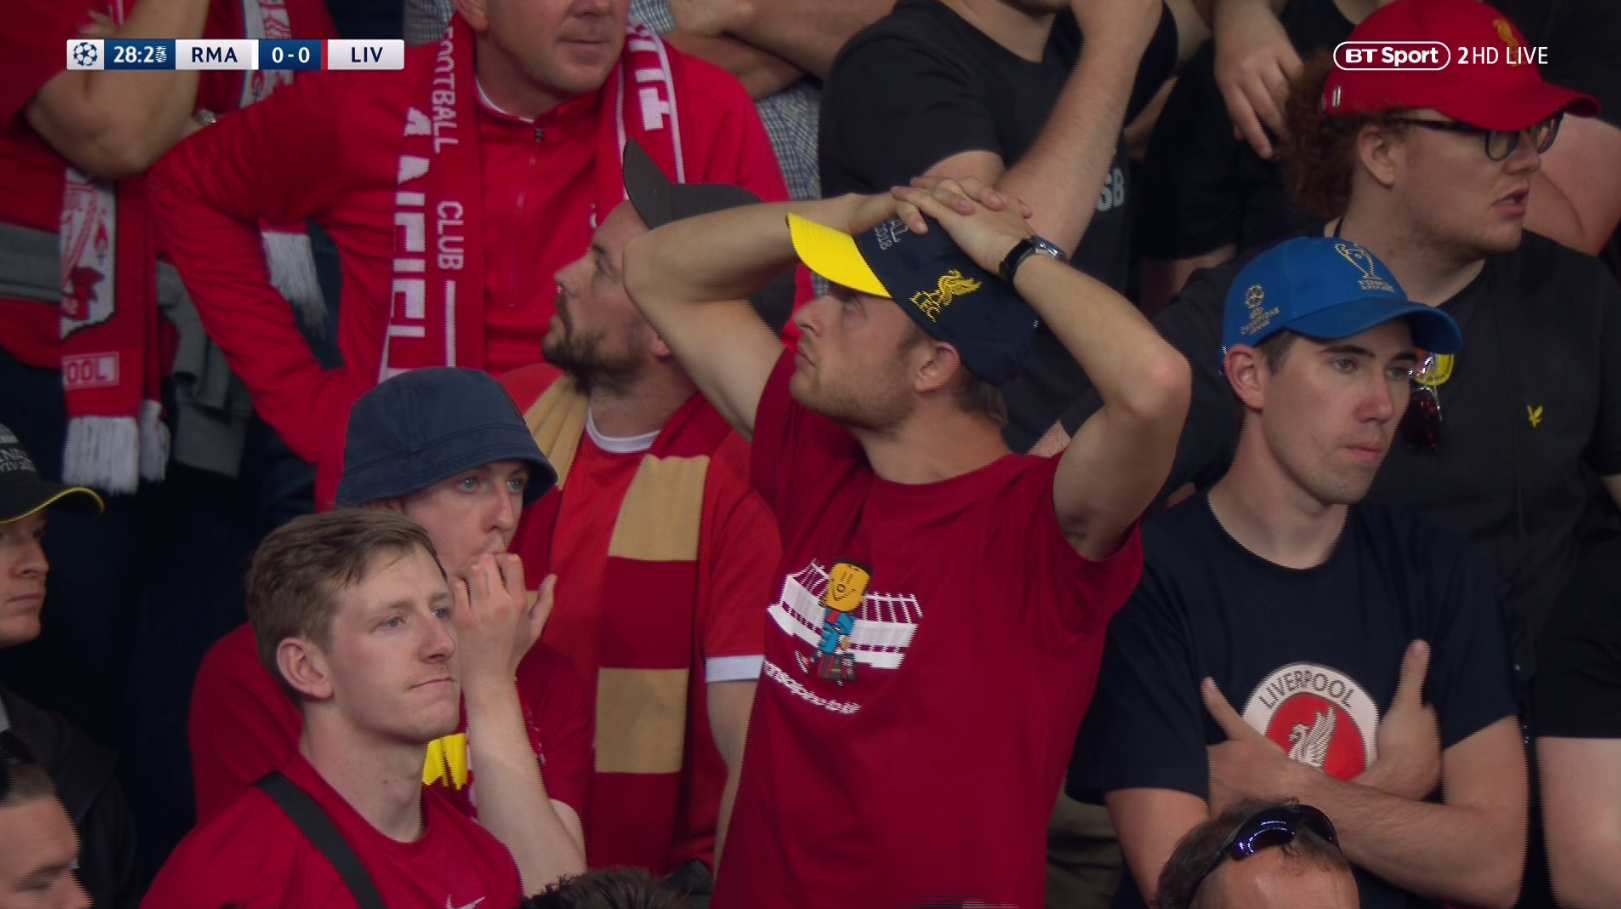 The faces speak a thousand words… nice bucket hat, mate